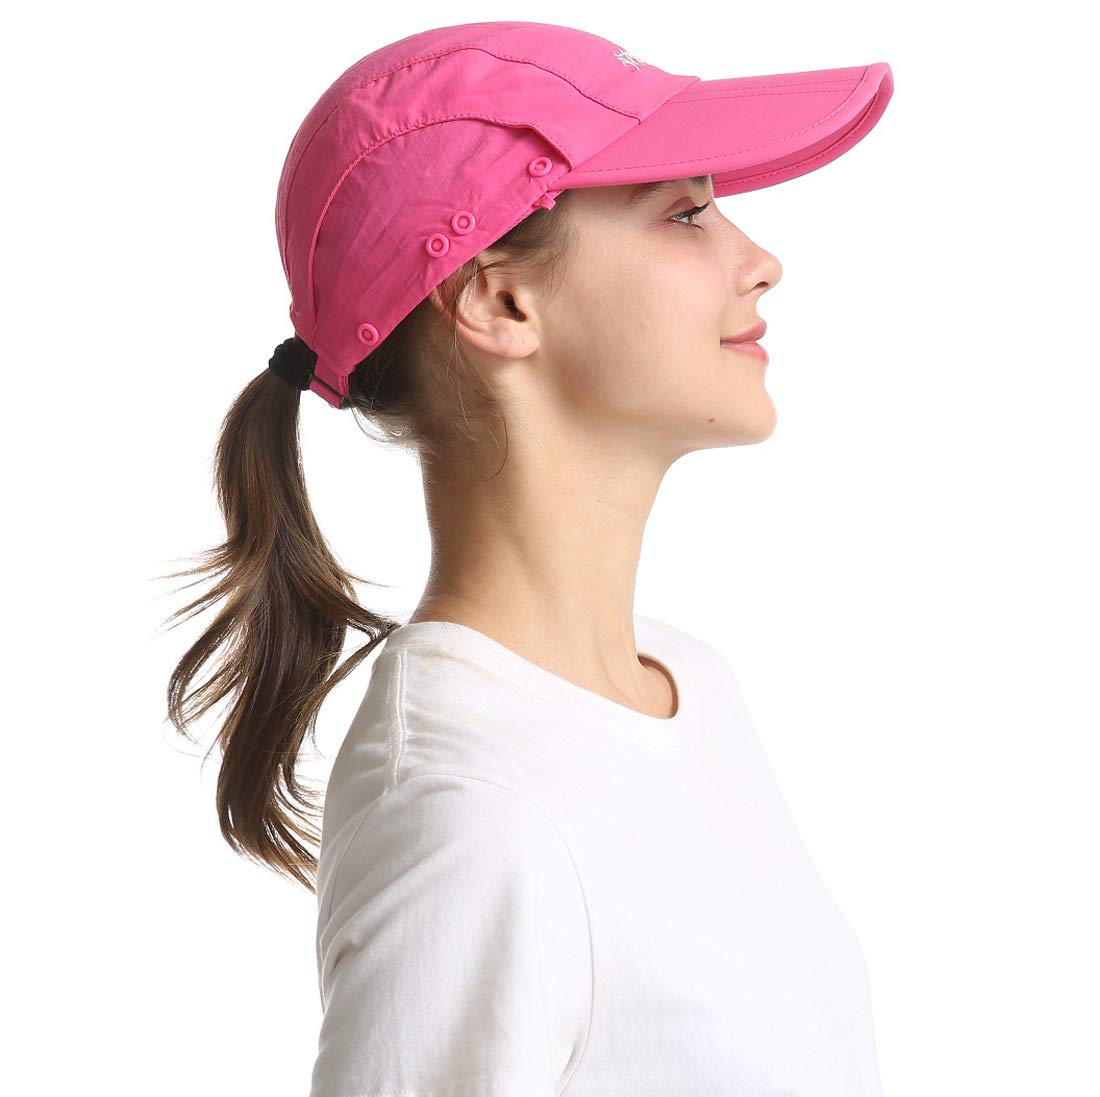 ICOLOR Sun Cap Fishing Hats Outdoor Sun Protection Visor Caps with Neck Face Flap Cover